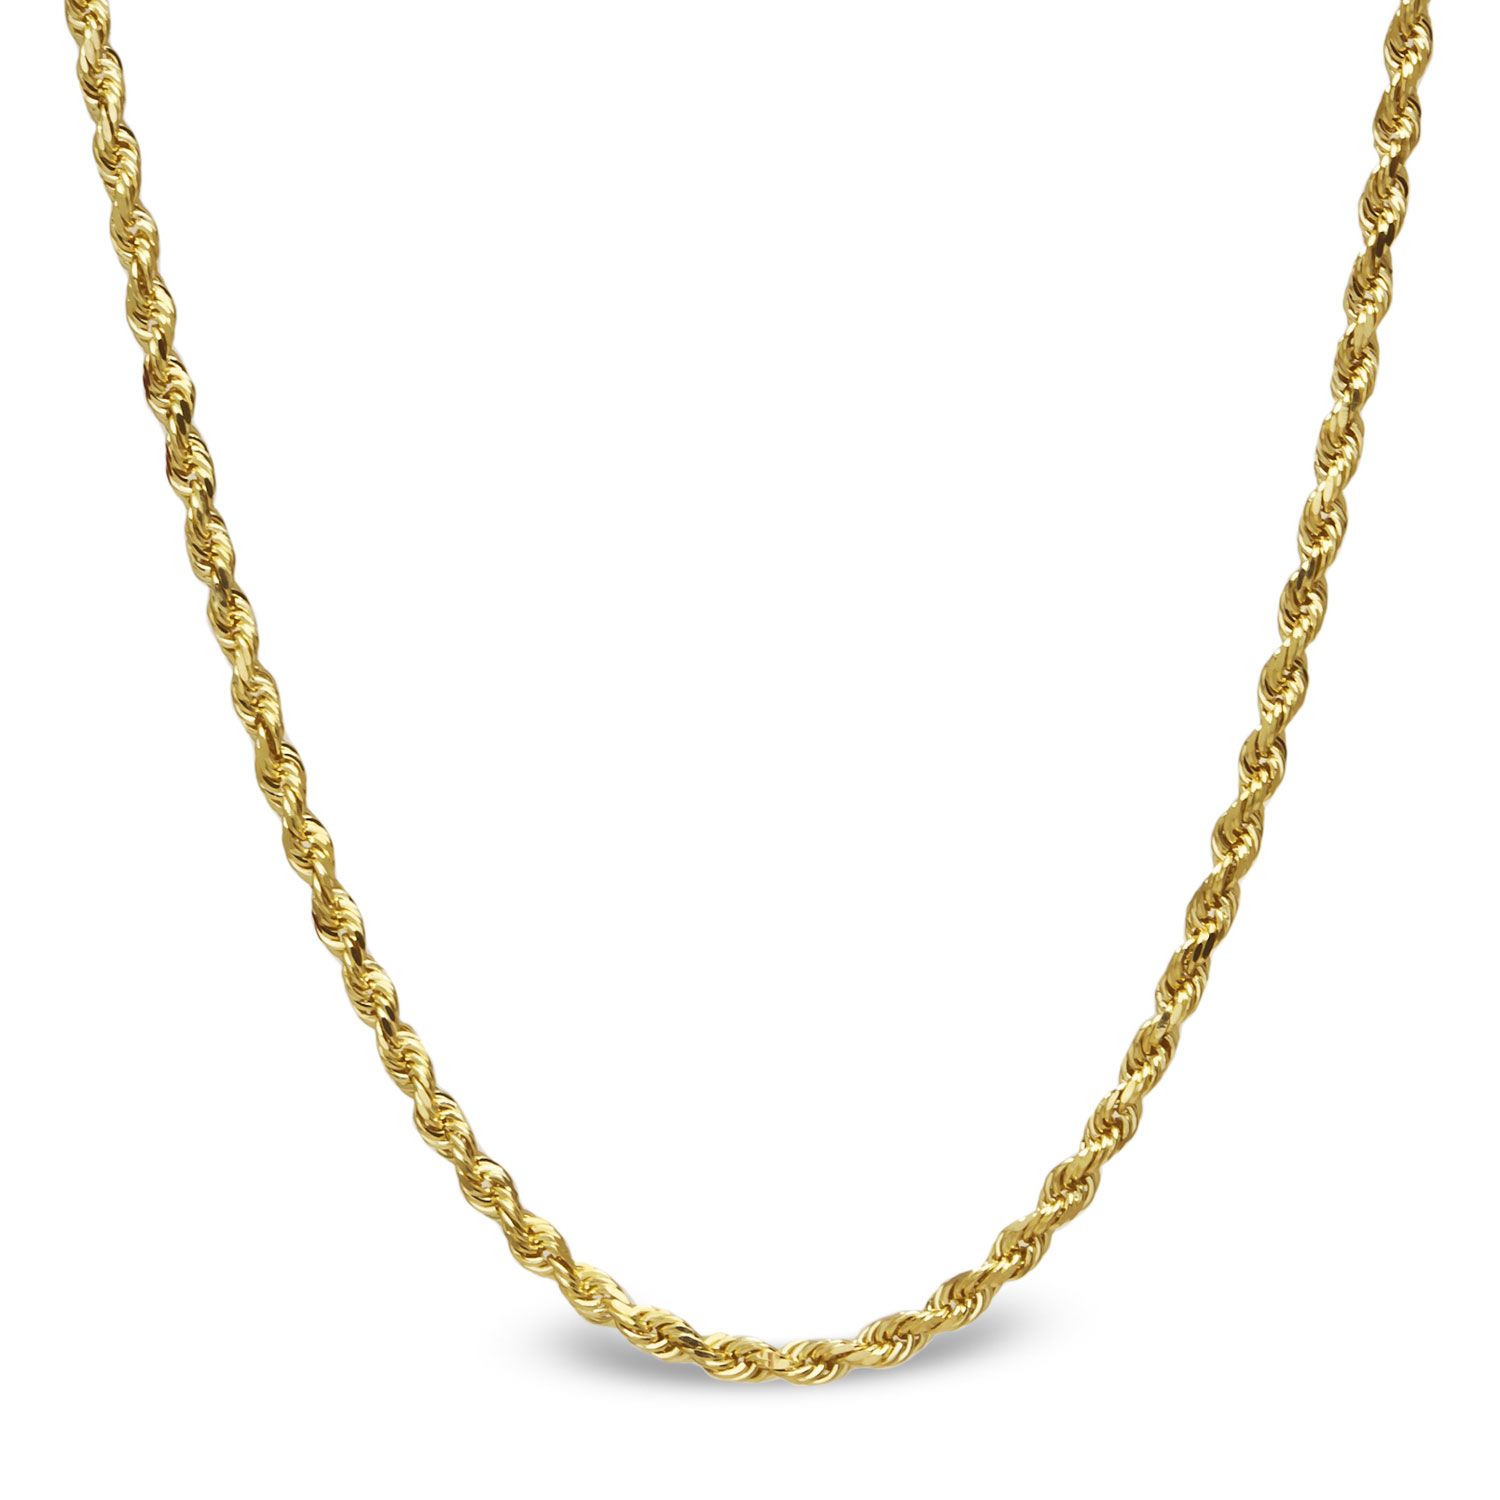 Diamond Cut Rope 14k Gold Necklace - 16 in.